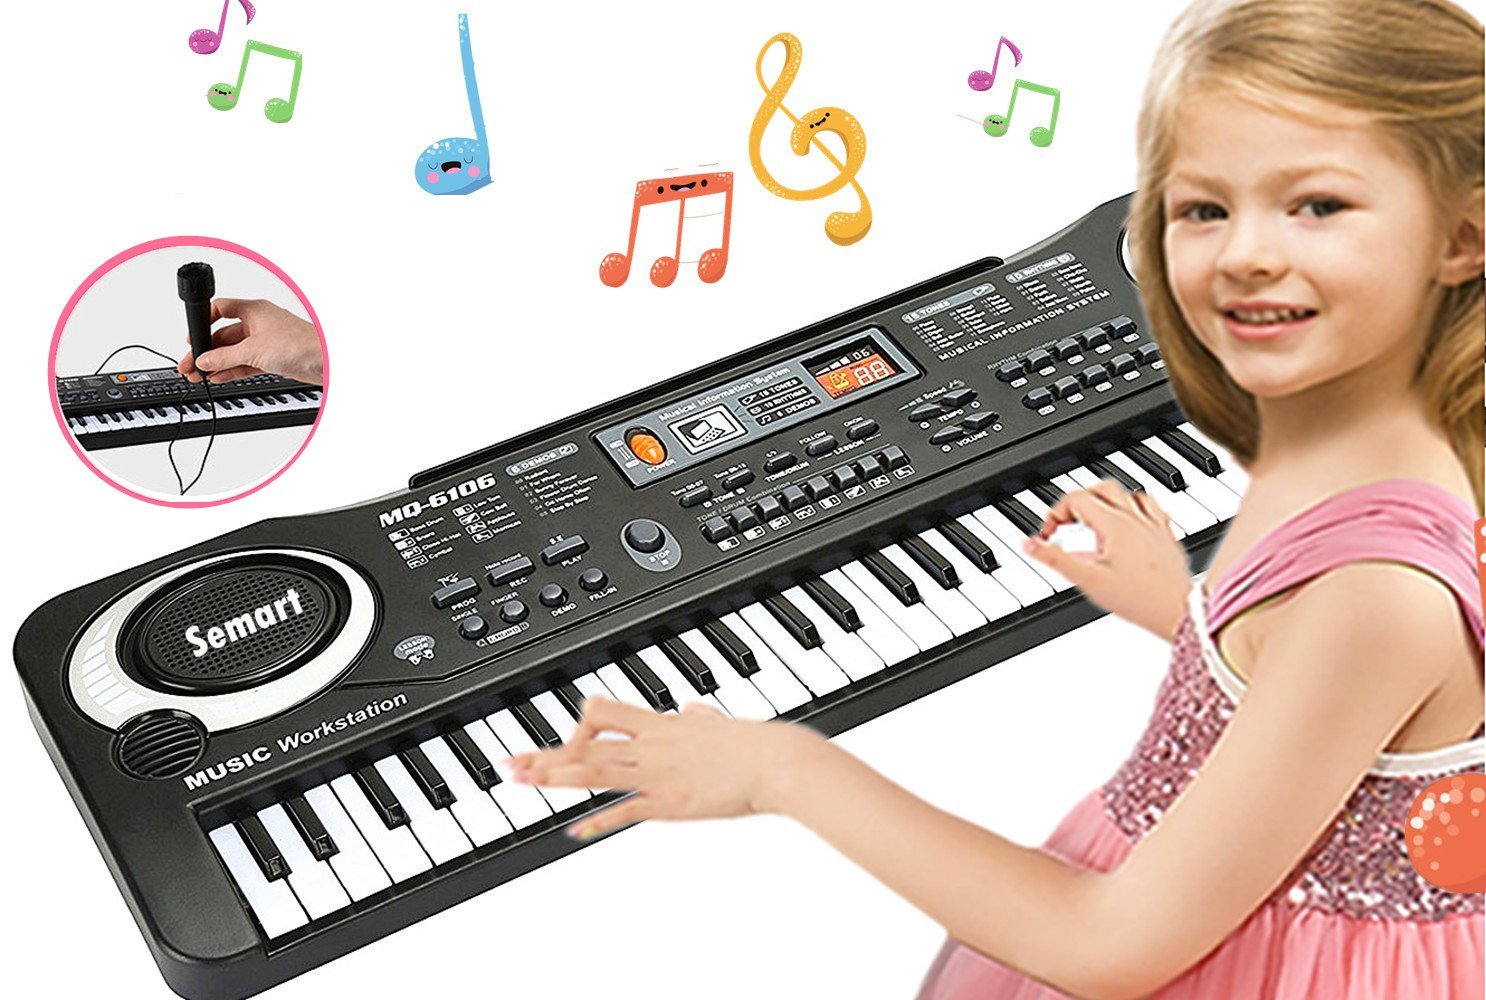 SEMART Piano Keyboard Music Piano Electric Keyboards for kids Musical Instrument USB multi-function w/Microphone Weighted keys Birthday Christmas Festival Gift for children by semart